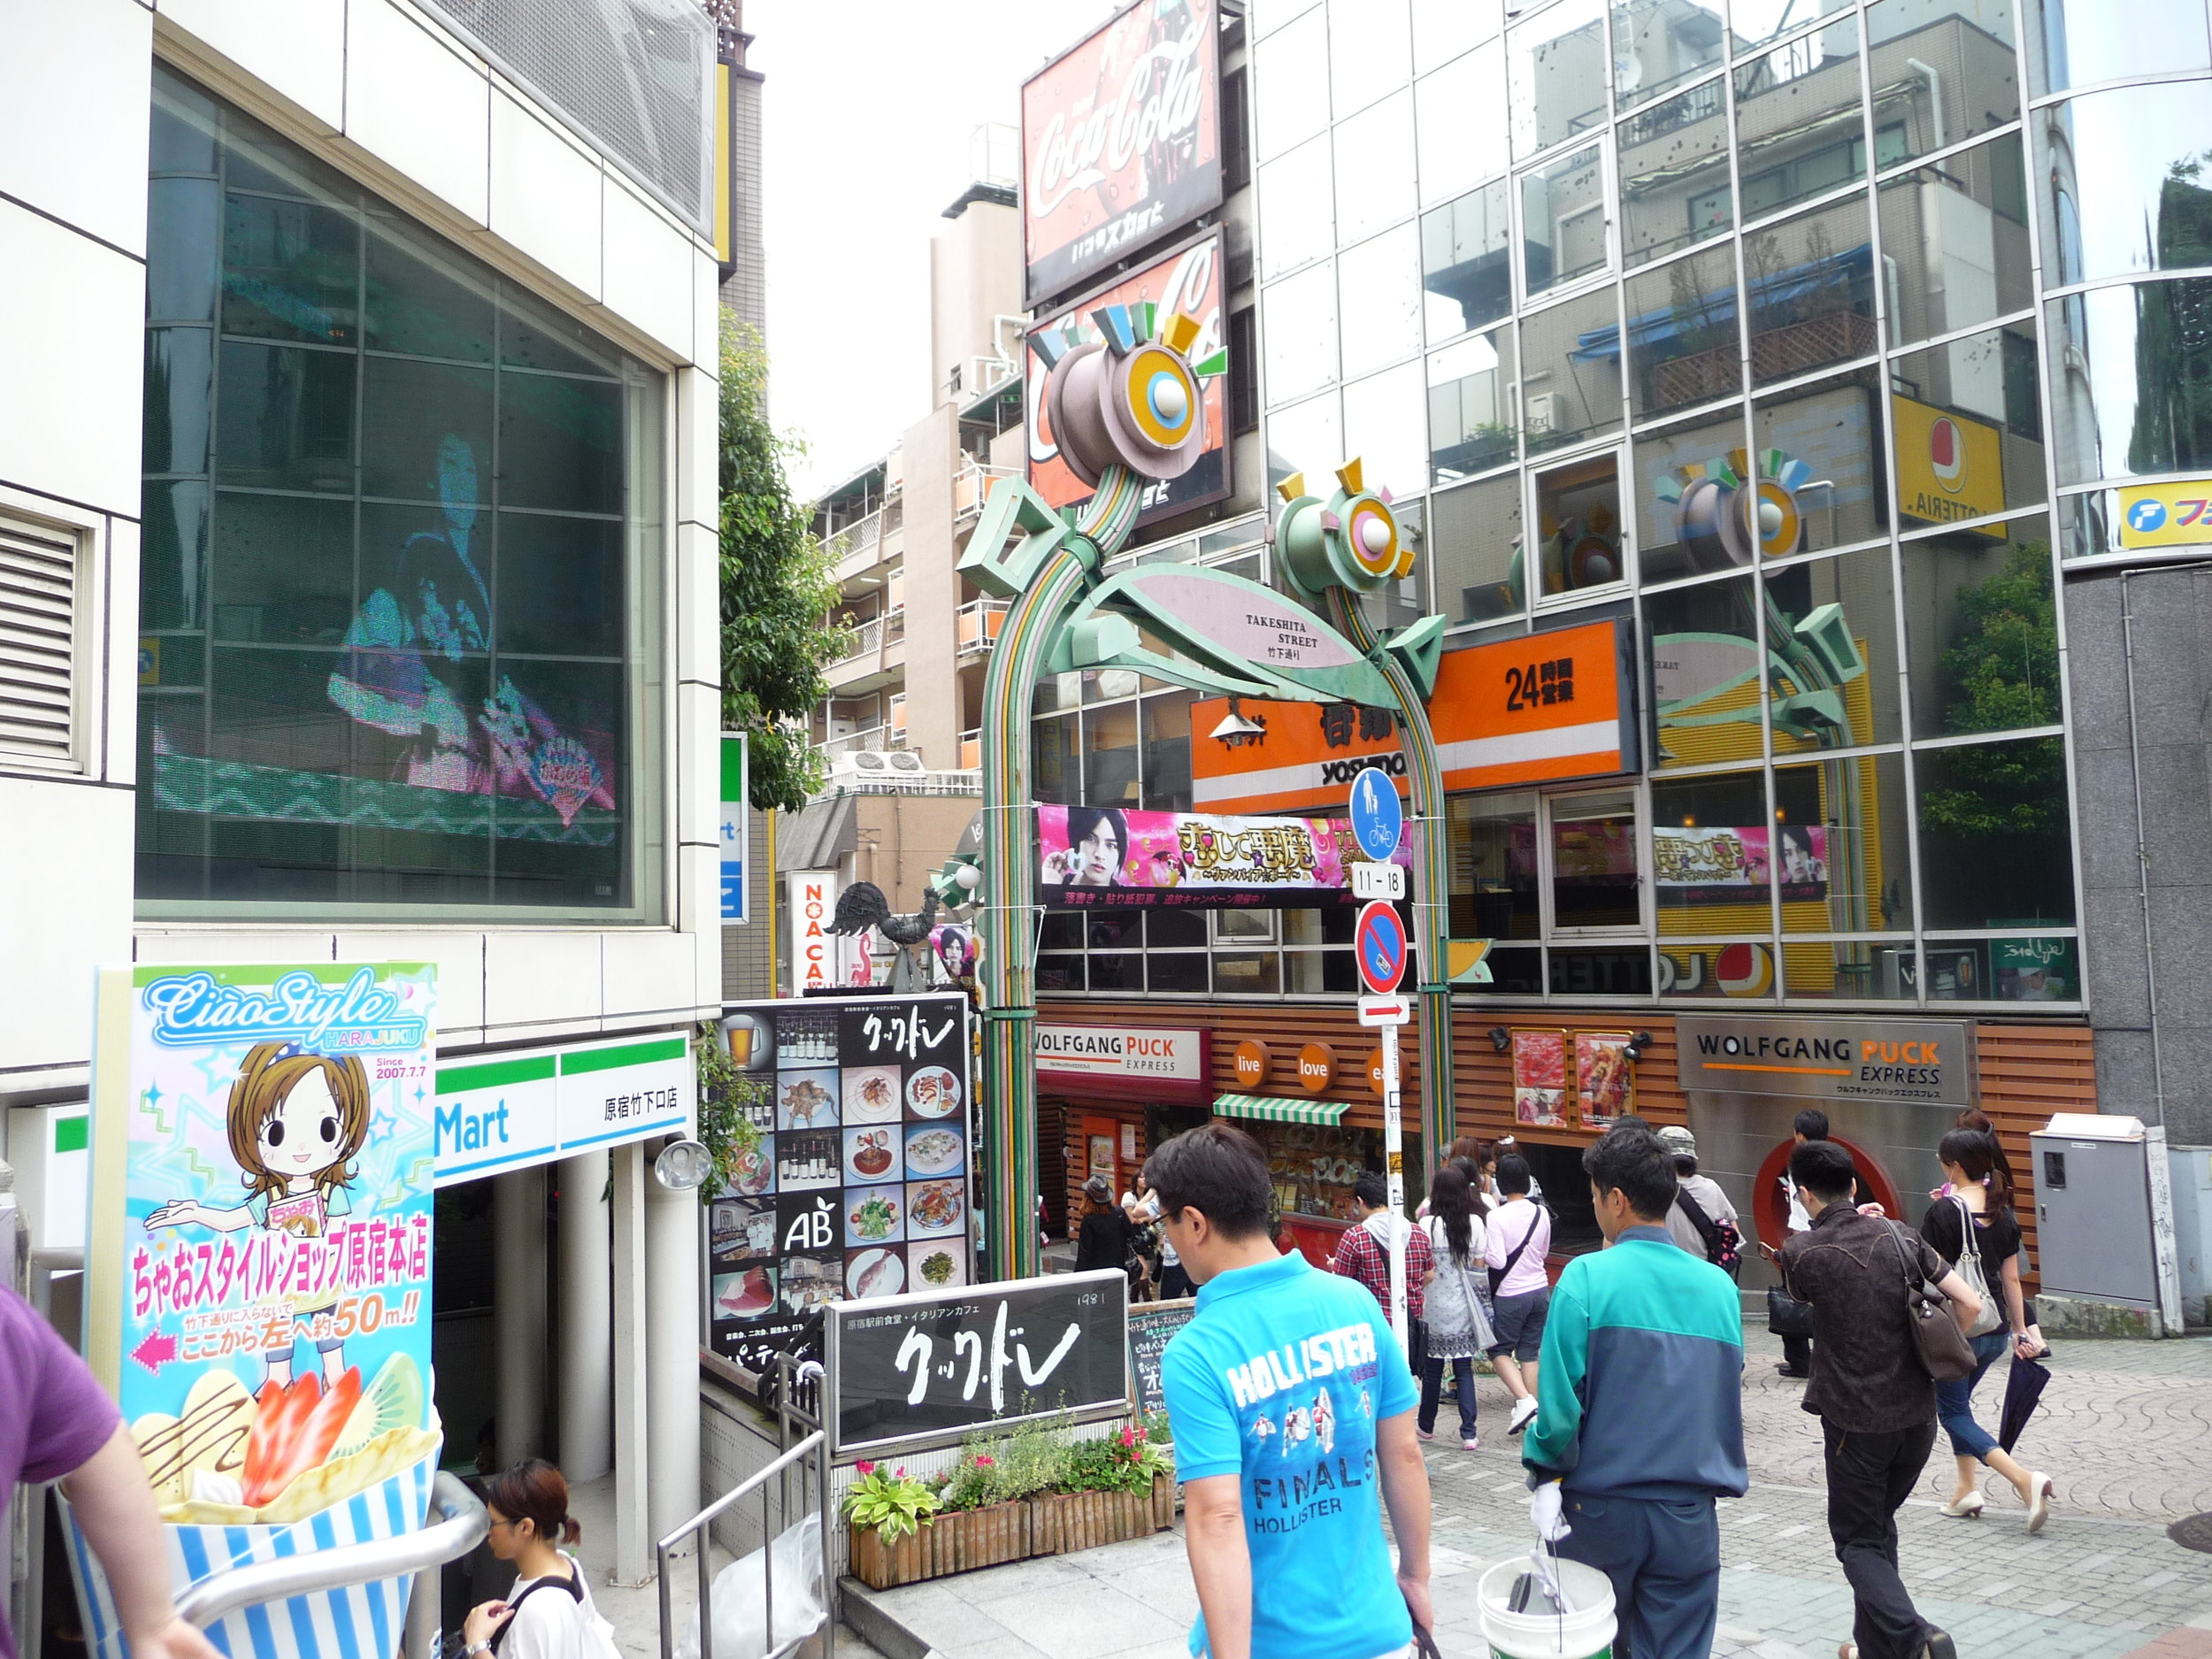 The entry arch to Takeshita Dori, Harajuku's main shopping arcade. For holidays and festivals this gate is often extravagantly decorated.